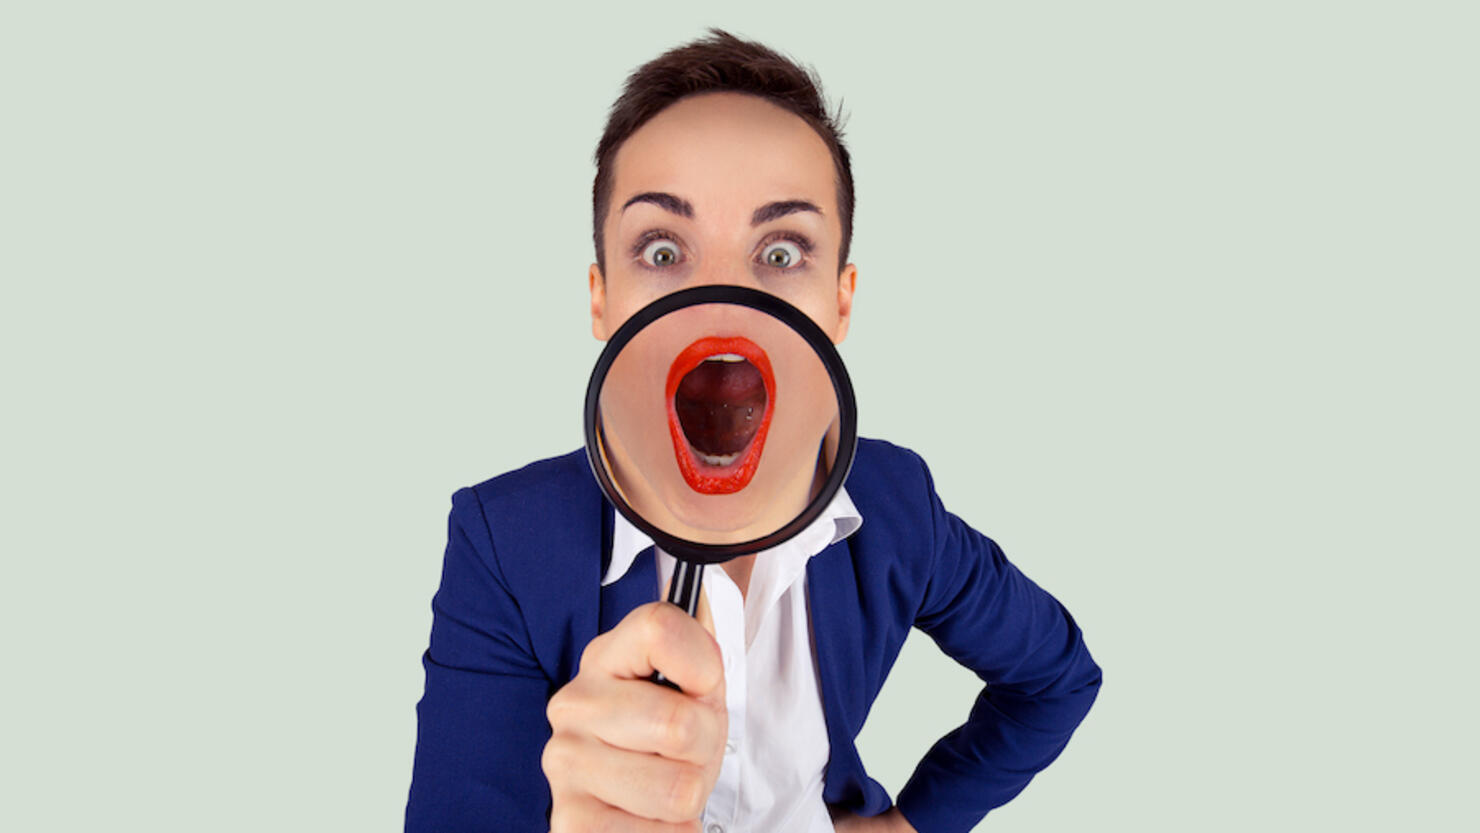 Wow, Big mouth open concept. Closeup cropped Portrait of a young shocked amazed young business woman blue suit  girl, magnifying lens on mouth isolated bright green white background Horizontal image